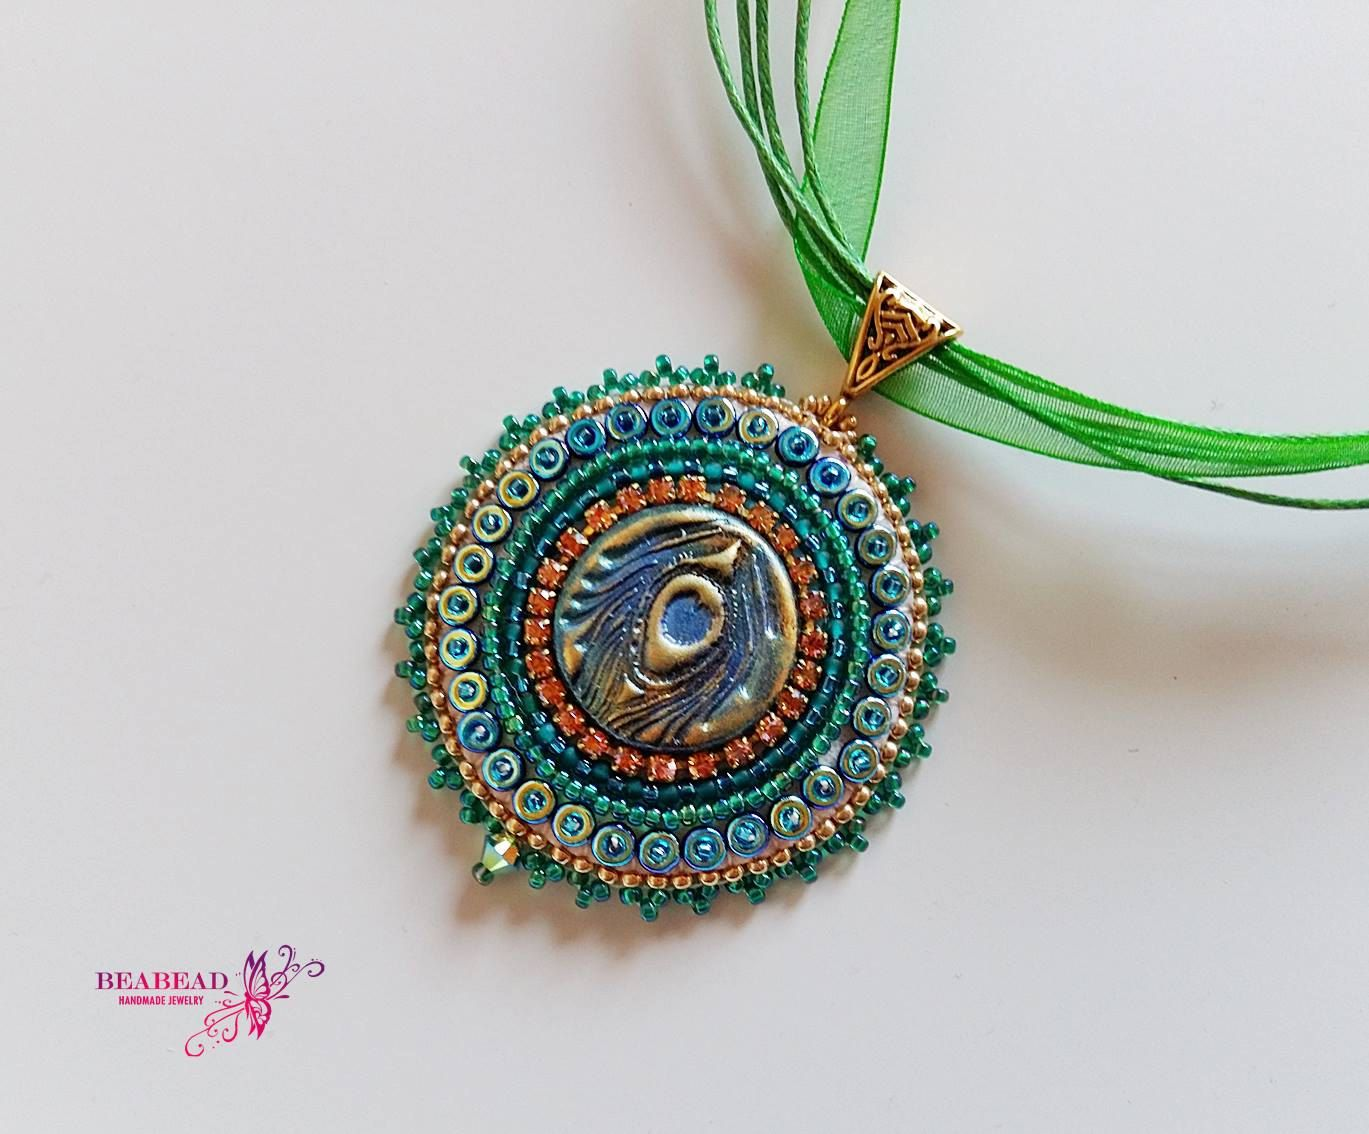 Bead embroidery pendant embroidered jewelry polymer clay cabochon bead embroidery pendant embroidered jewelry polymer clay cabochon handmade jewelry with peacock cabochon mozeypictures Image collections